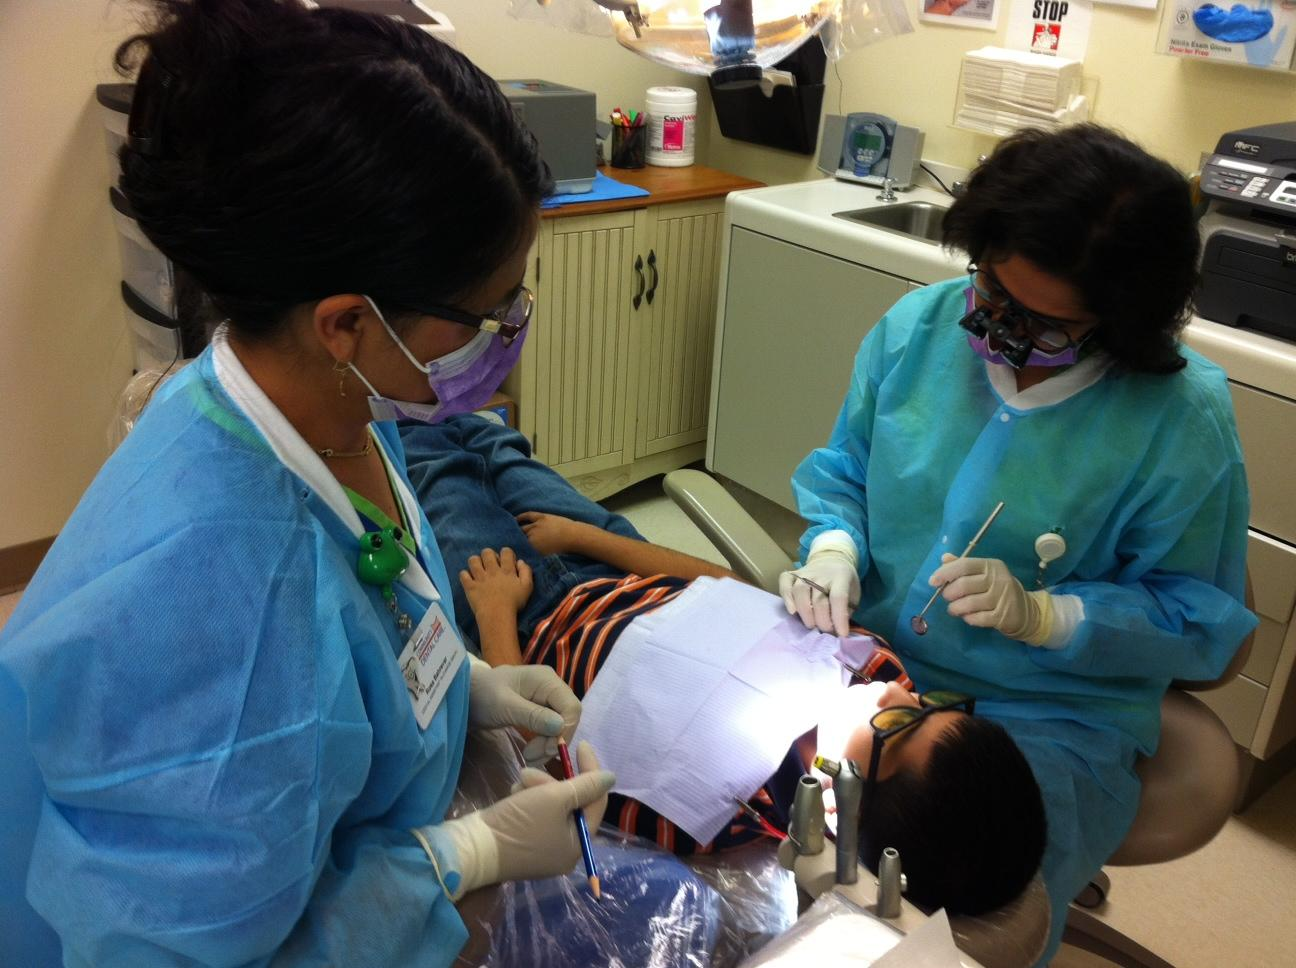 dental school clinic to save money on dental care